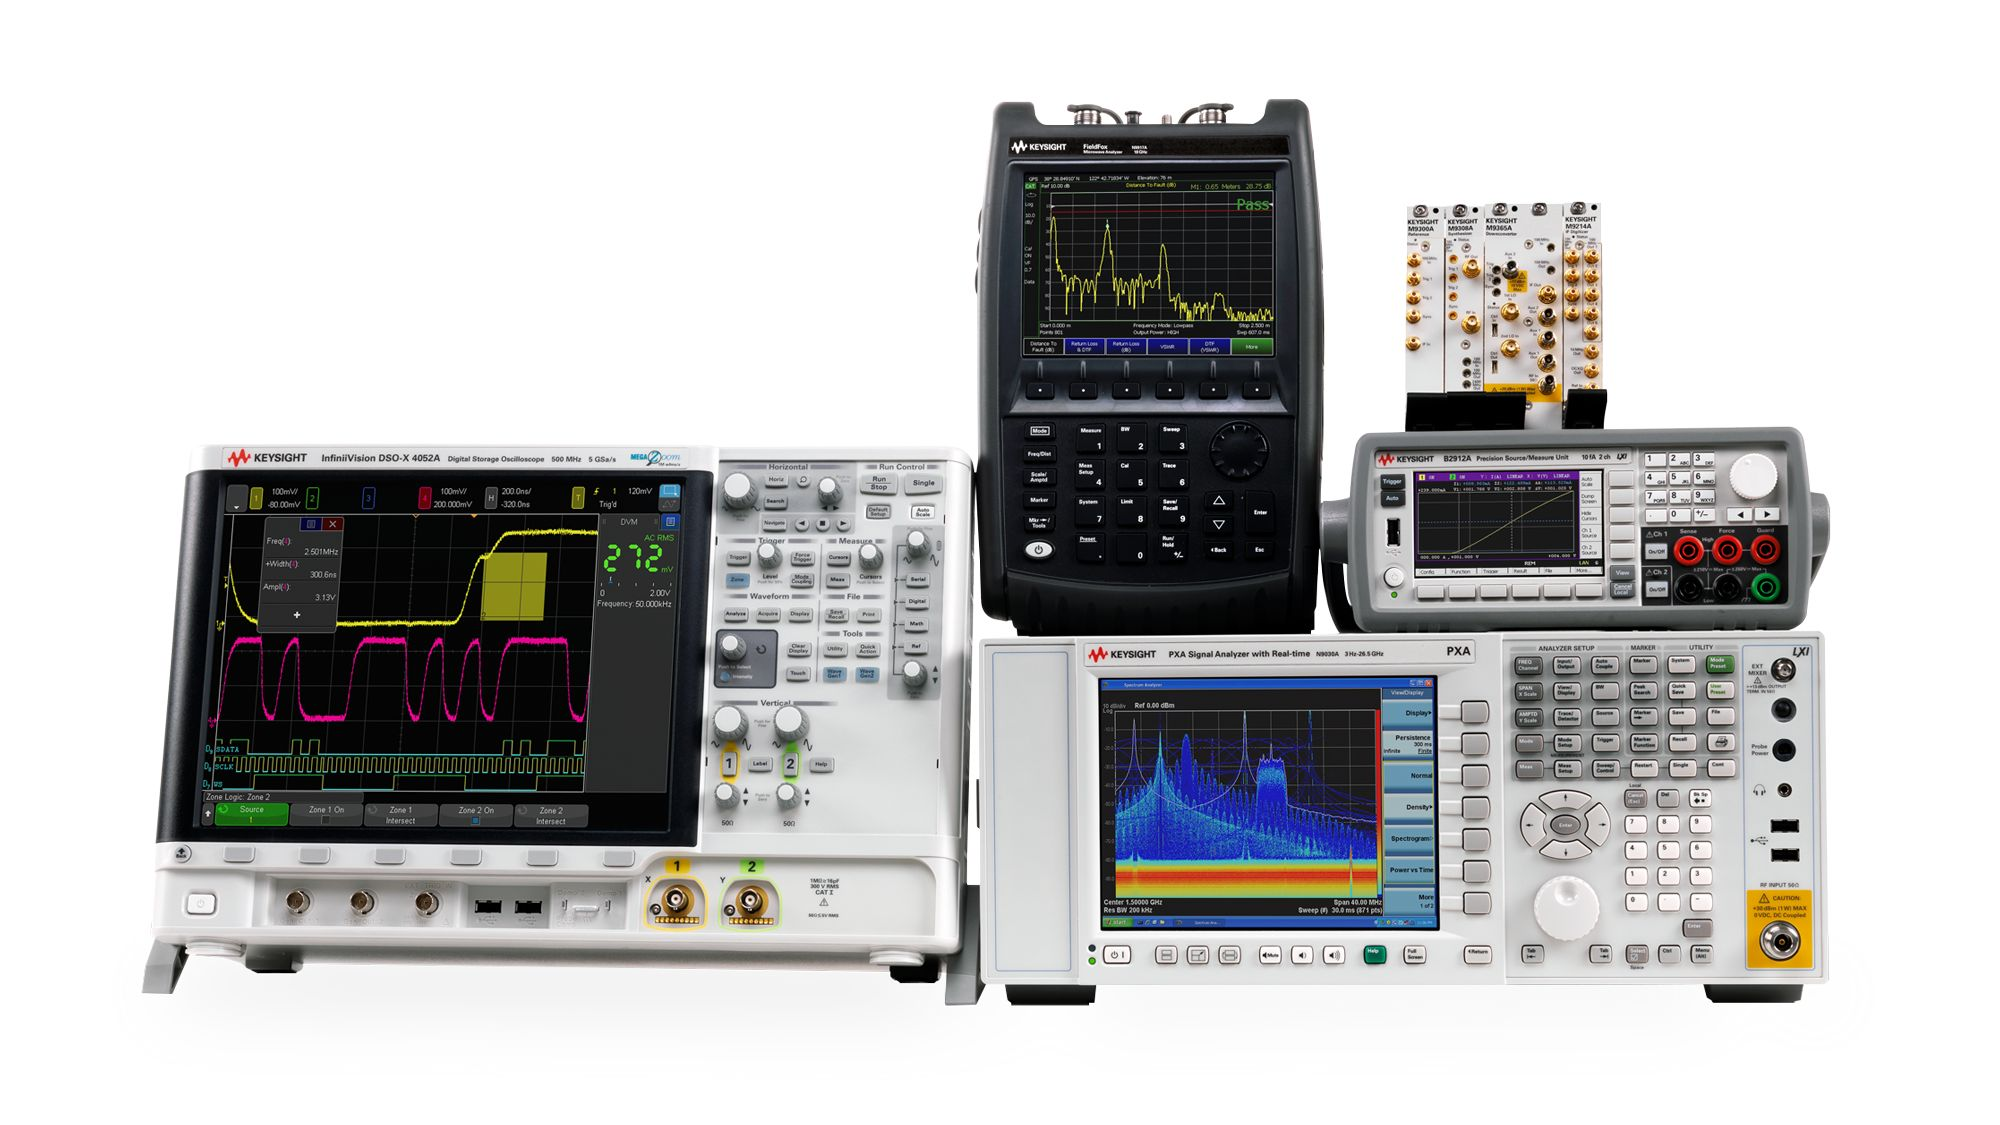 A comprehensive automation testing tools and equipment from Keysight